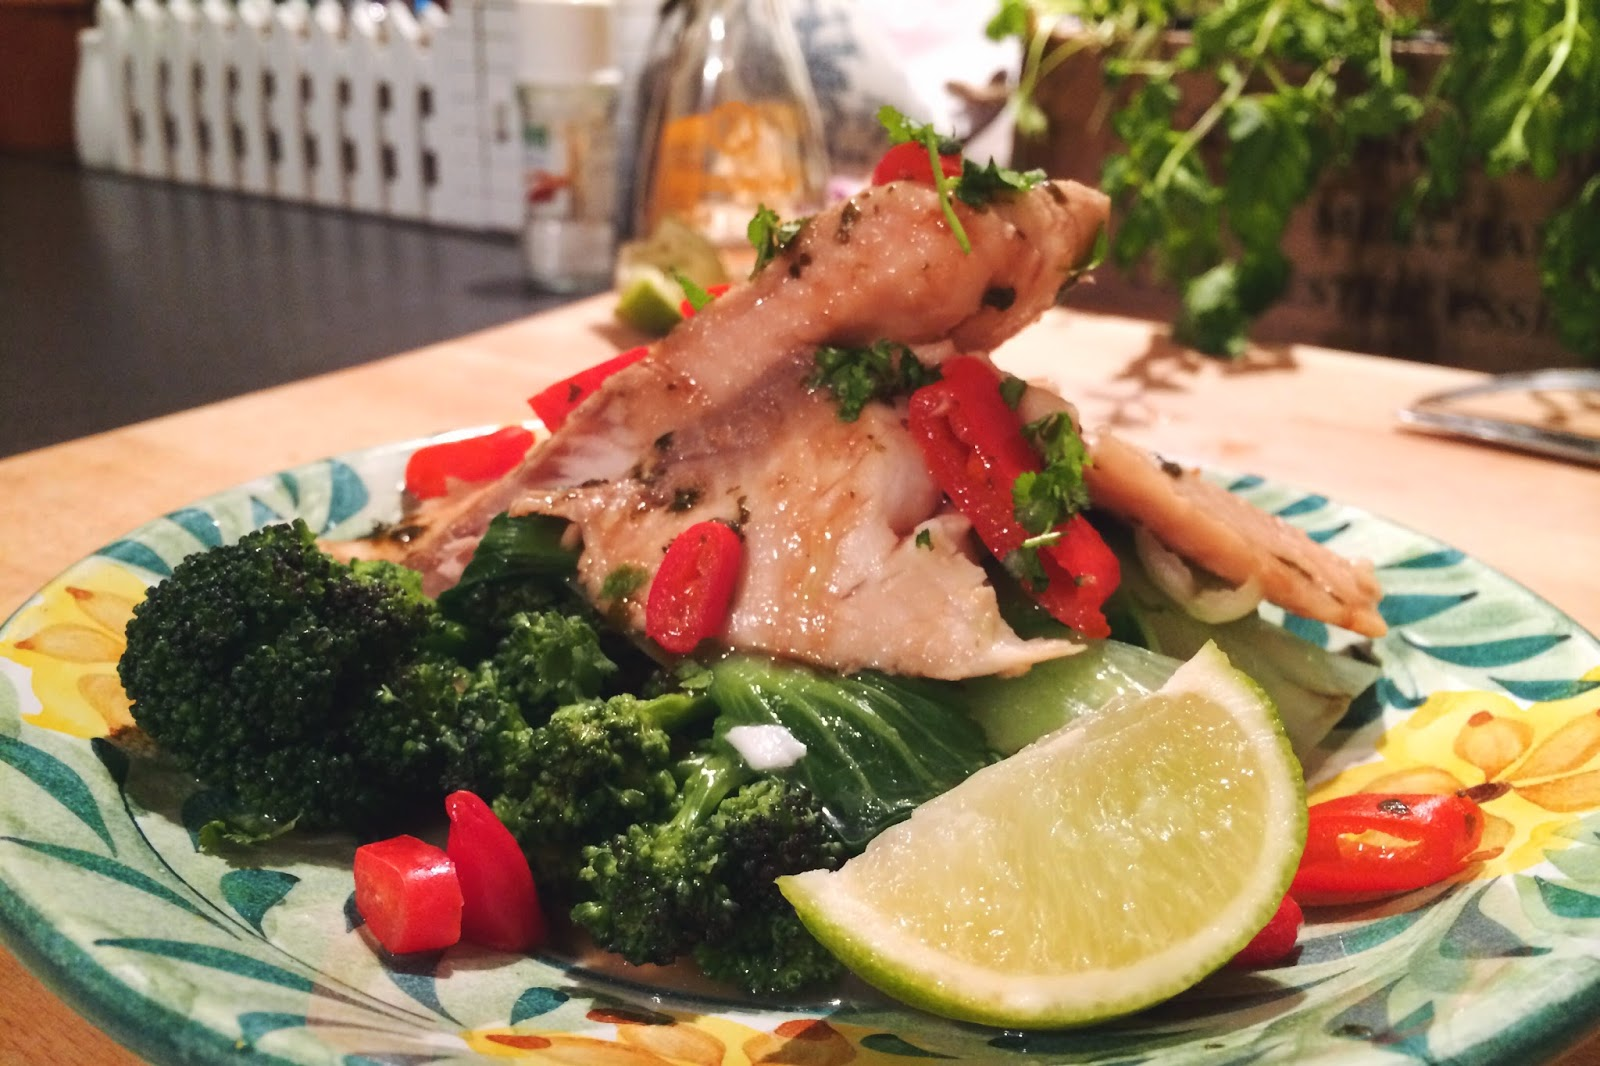 FashionFake, a UK fashion and lifestyle blog. FashionFake cooks is a series of easy, homemade recipes aimed to help cook delicious and healthy meals at home. Talapia fish fillets with chilli and lime.